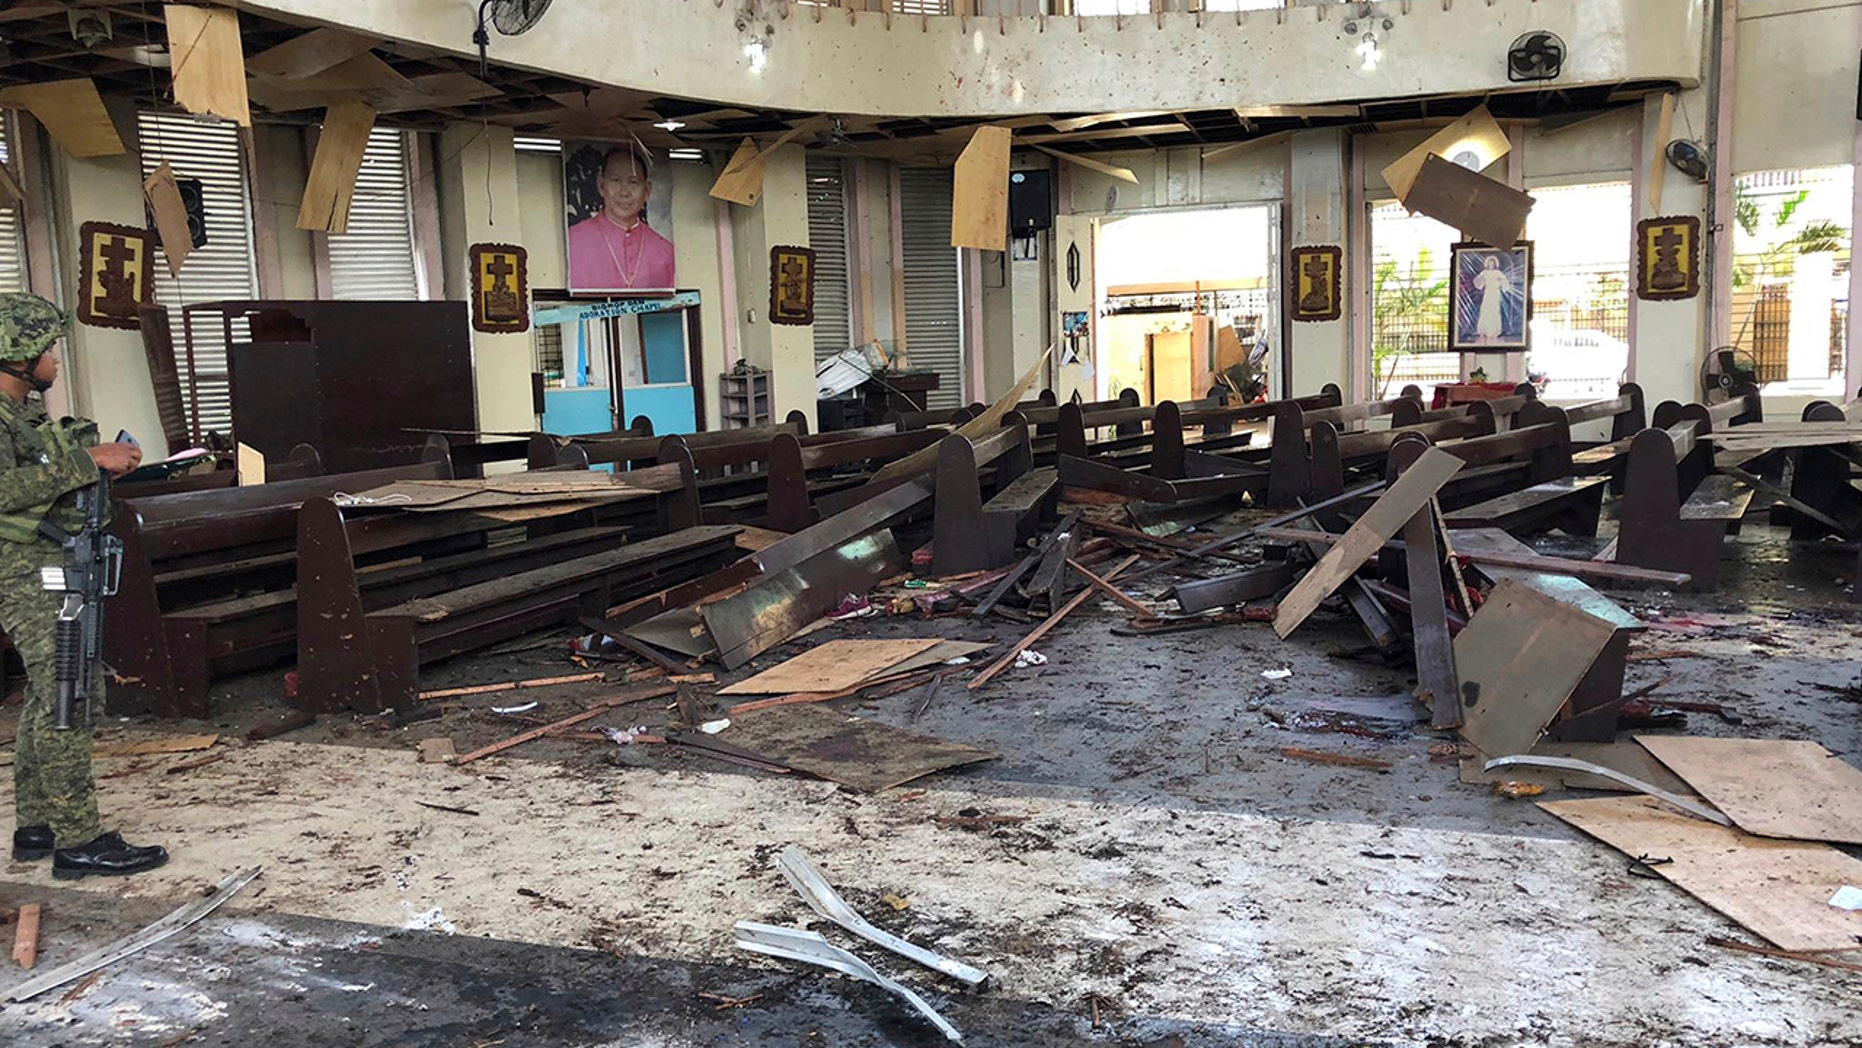 Jolo church attack: Many killed in Philippines